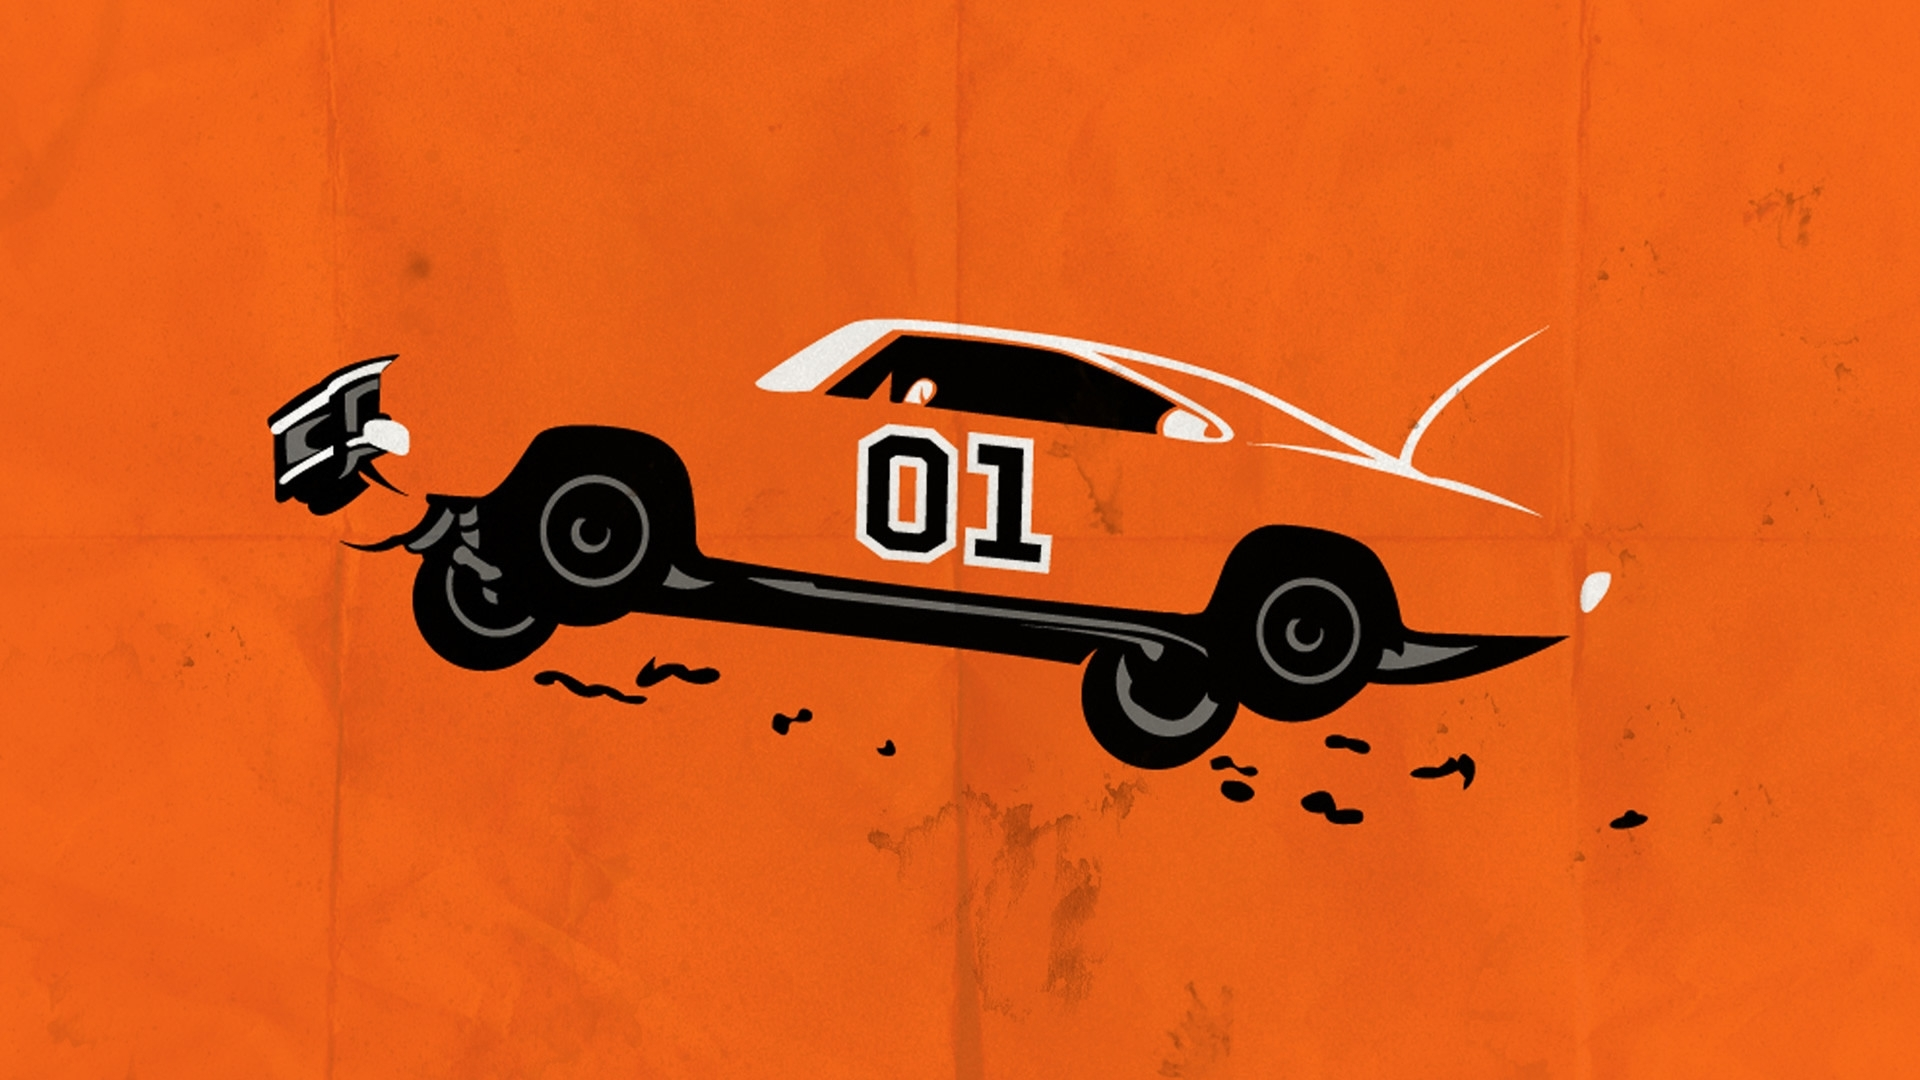 dukes of hazzard backgrounds (36+ images)